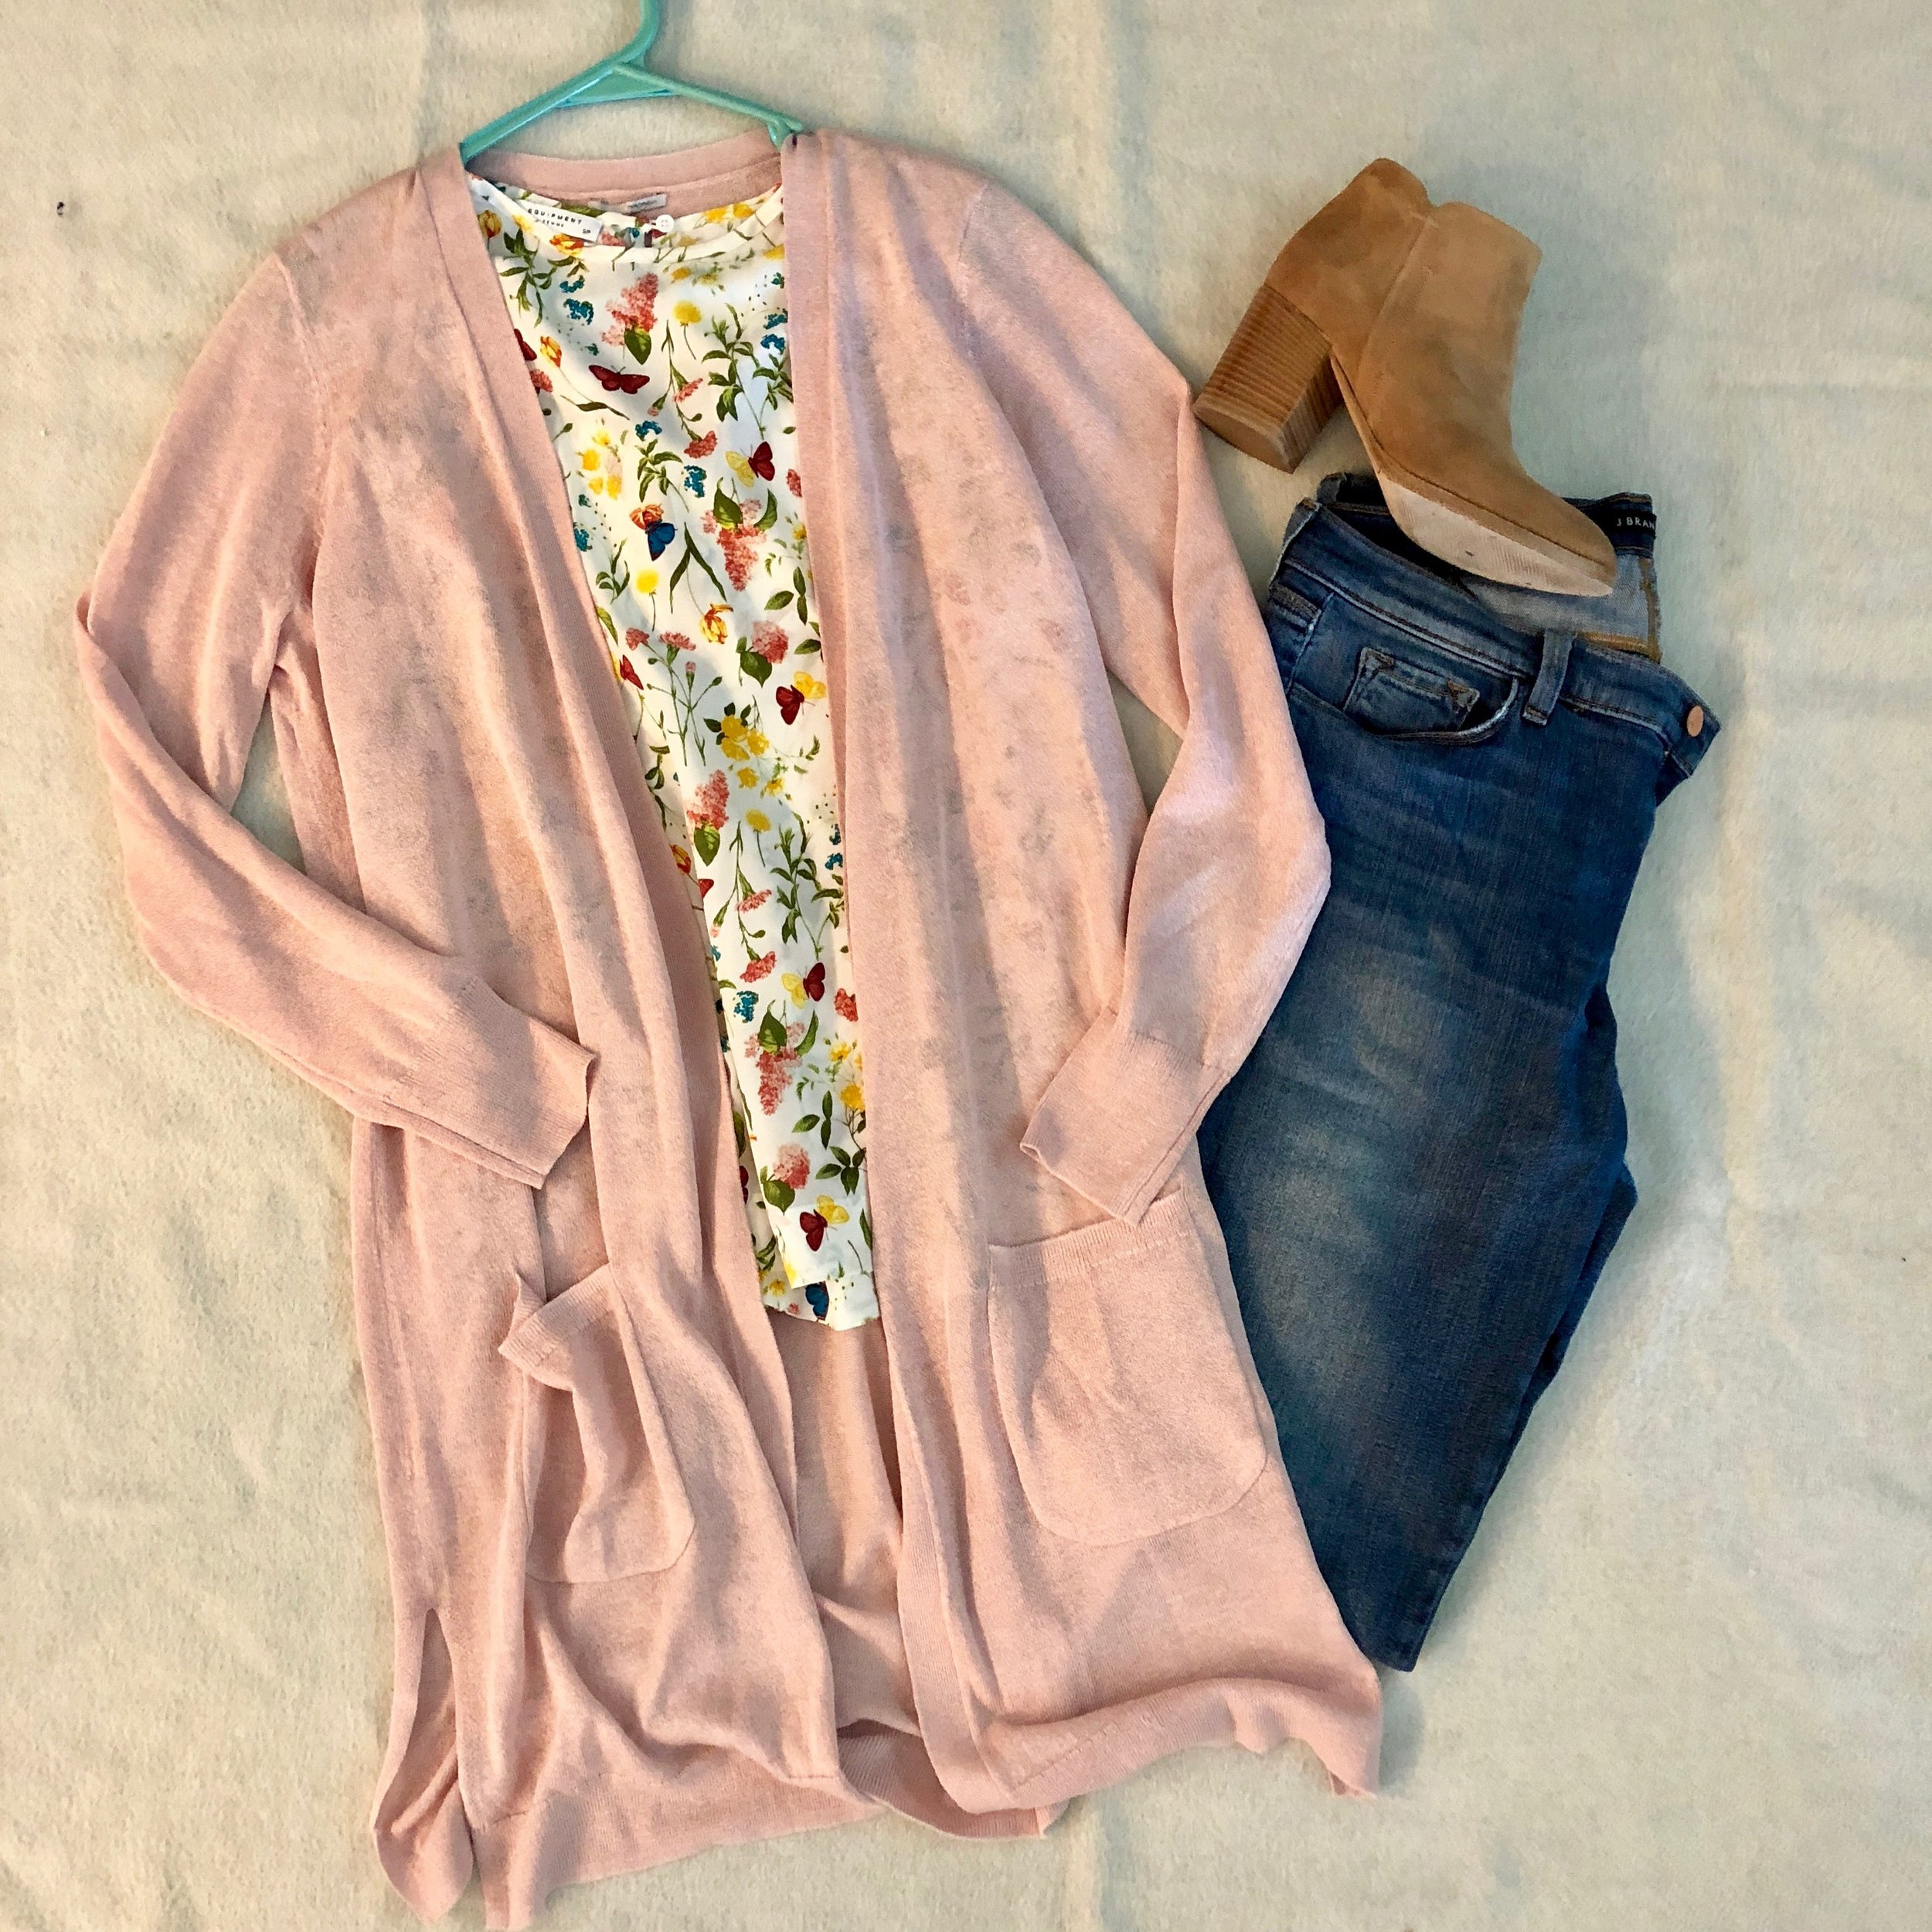 My client loves this floral print blouse, but planned on only wearing it to the office - so I showed her how to pair it with jeans and booties for a movie night with friends.